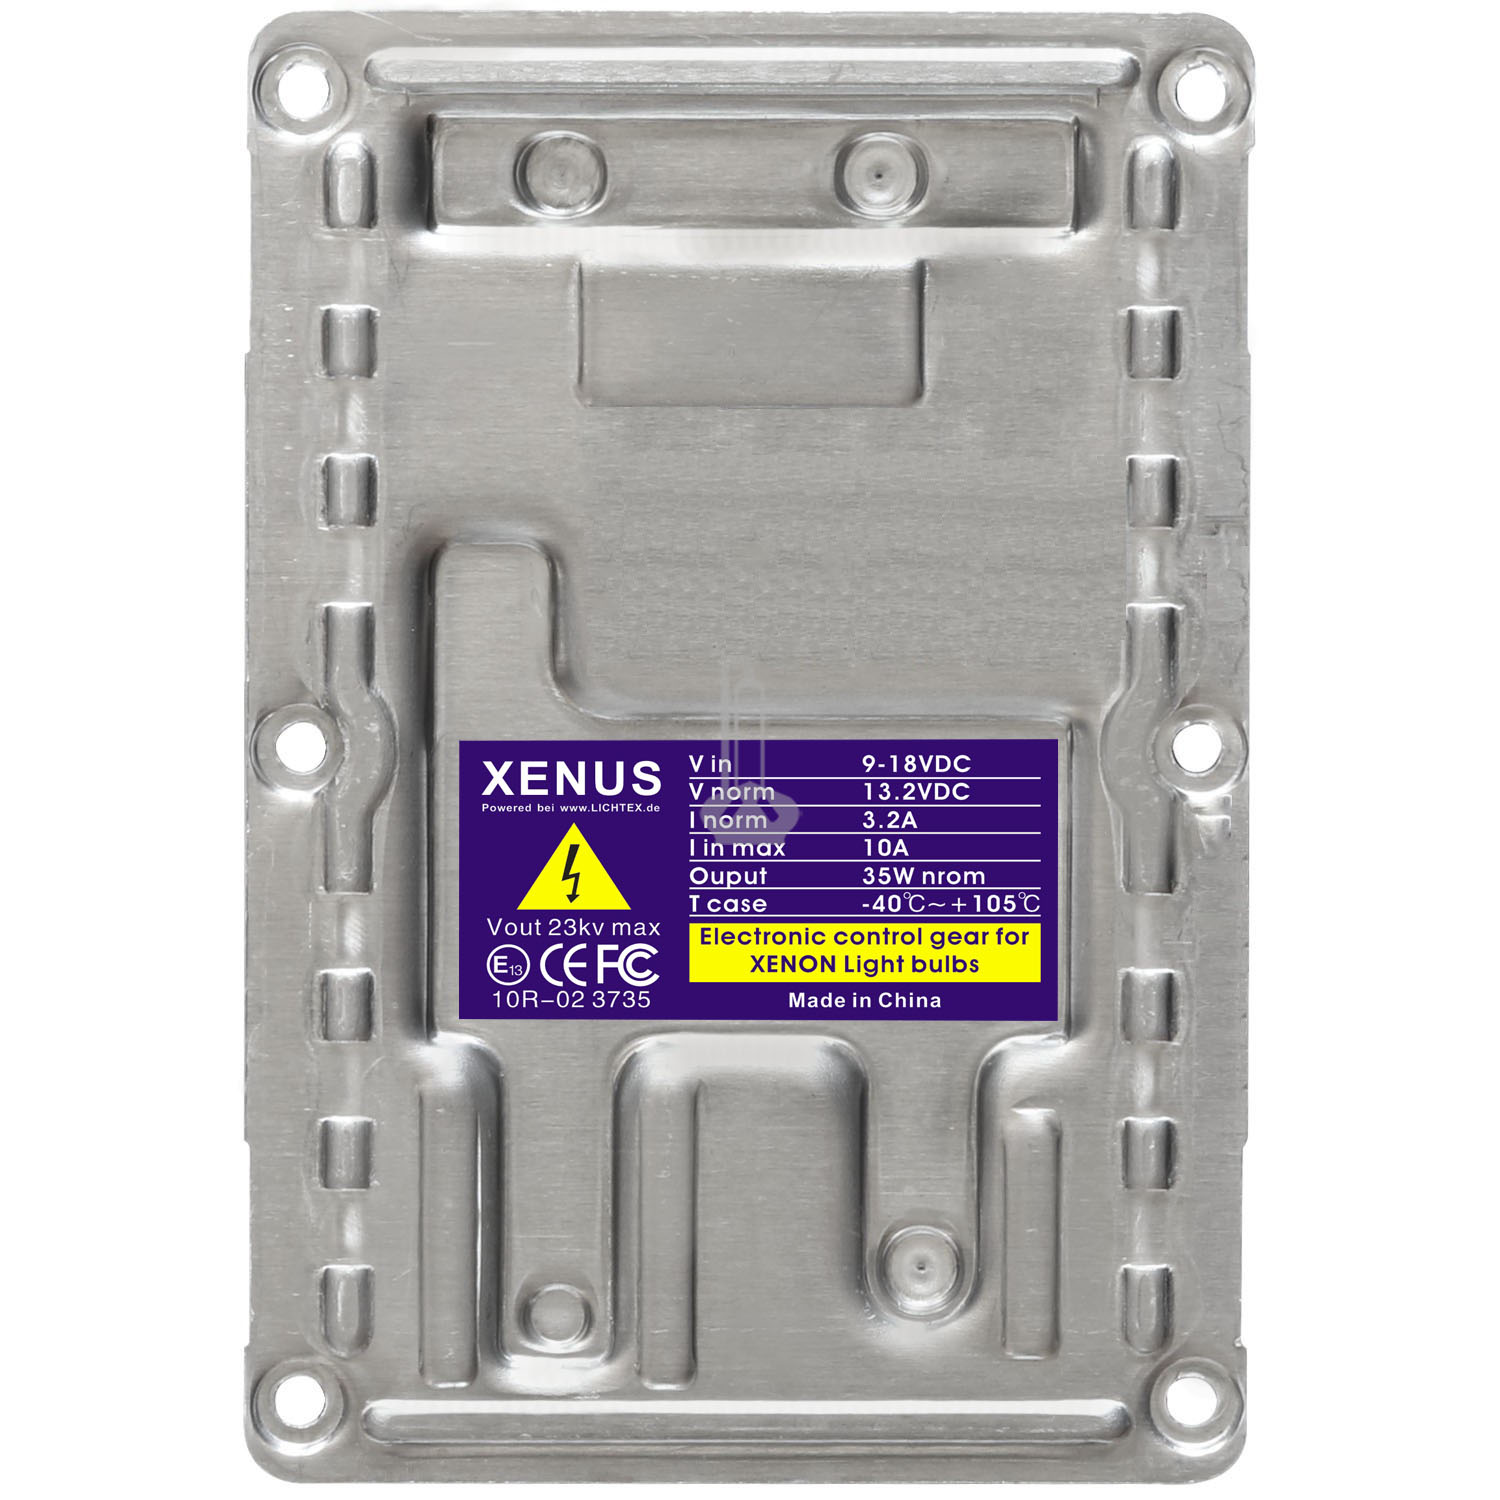 XENUS LAD5G 12PIN D1S Xenon Headlight Ballast, Replacement for Valeo